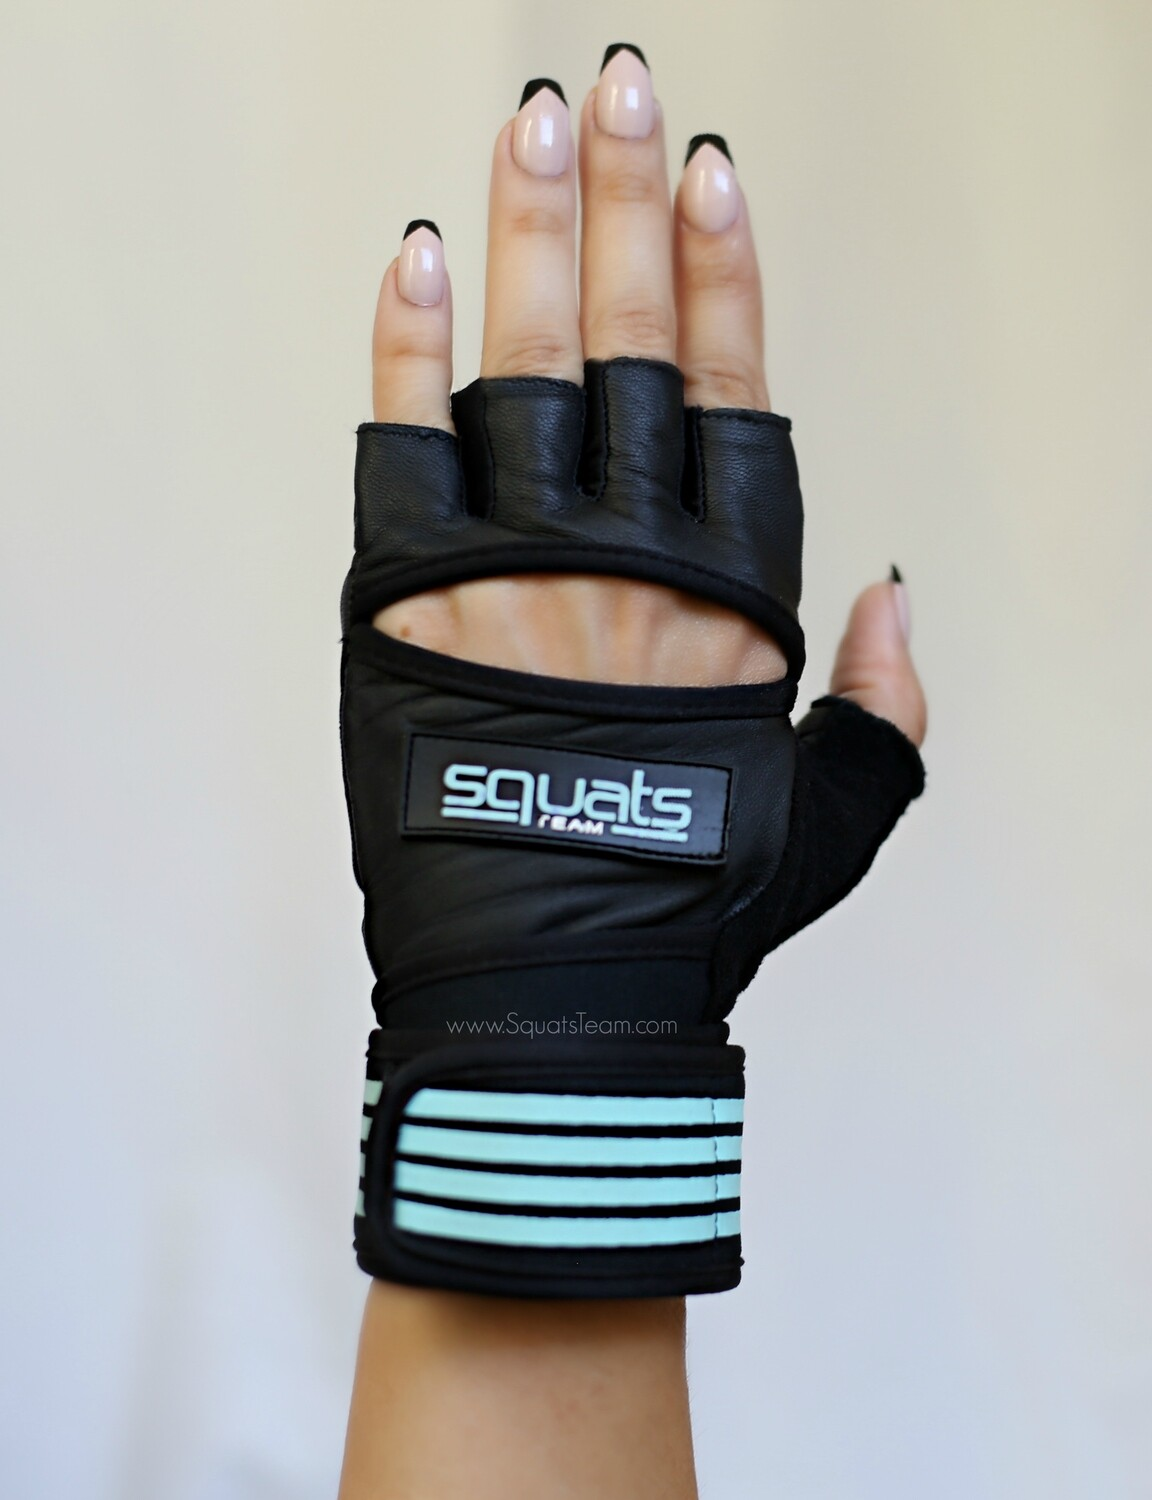 SQUATSTEAM Fitness Gloves (Mint)